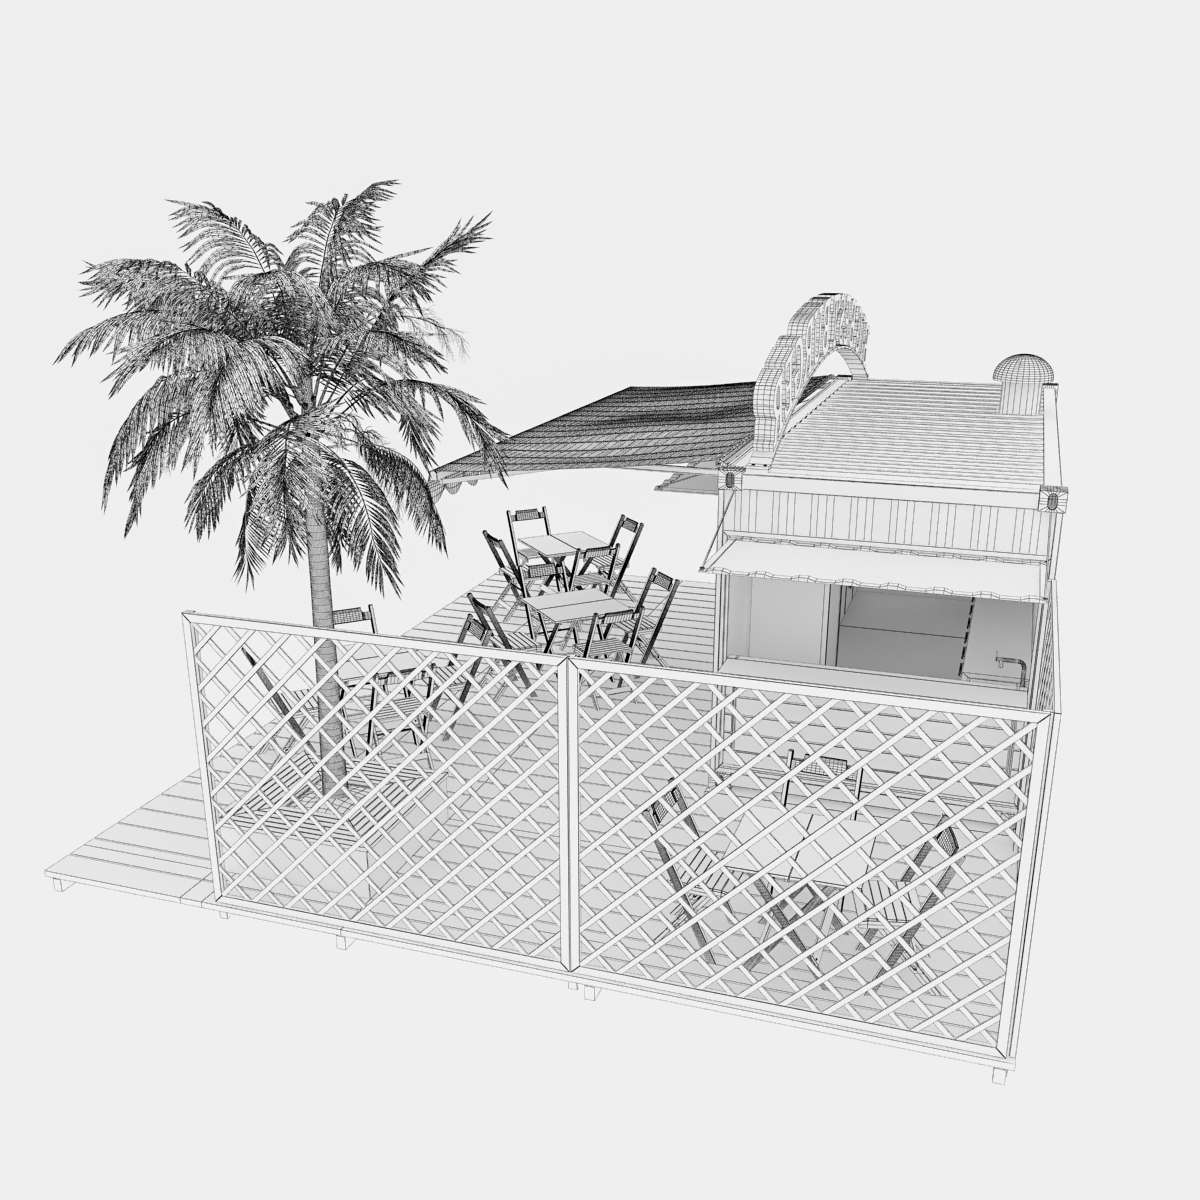 shipping container food stand 3d model max fbx ma mb texture obj 278565